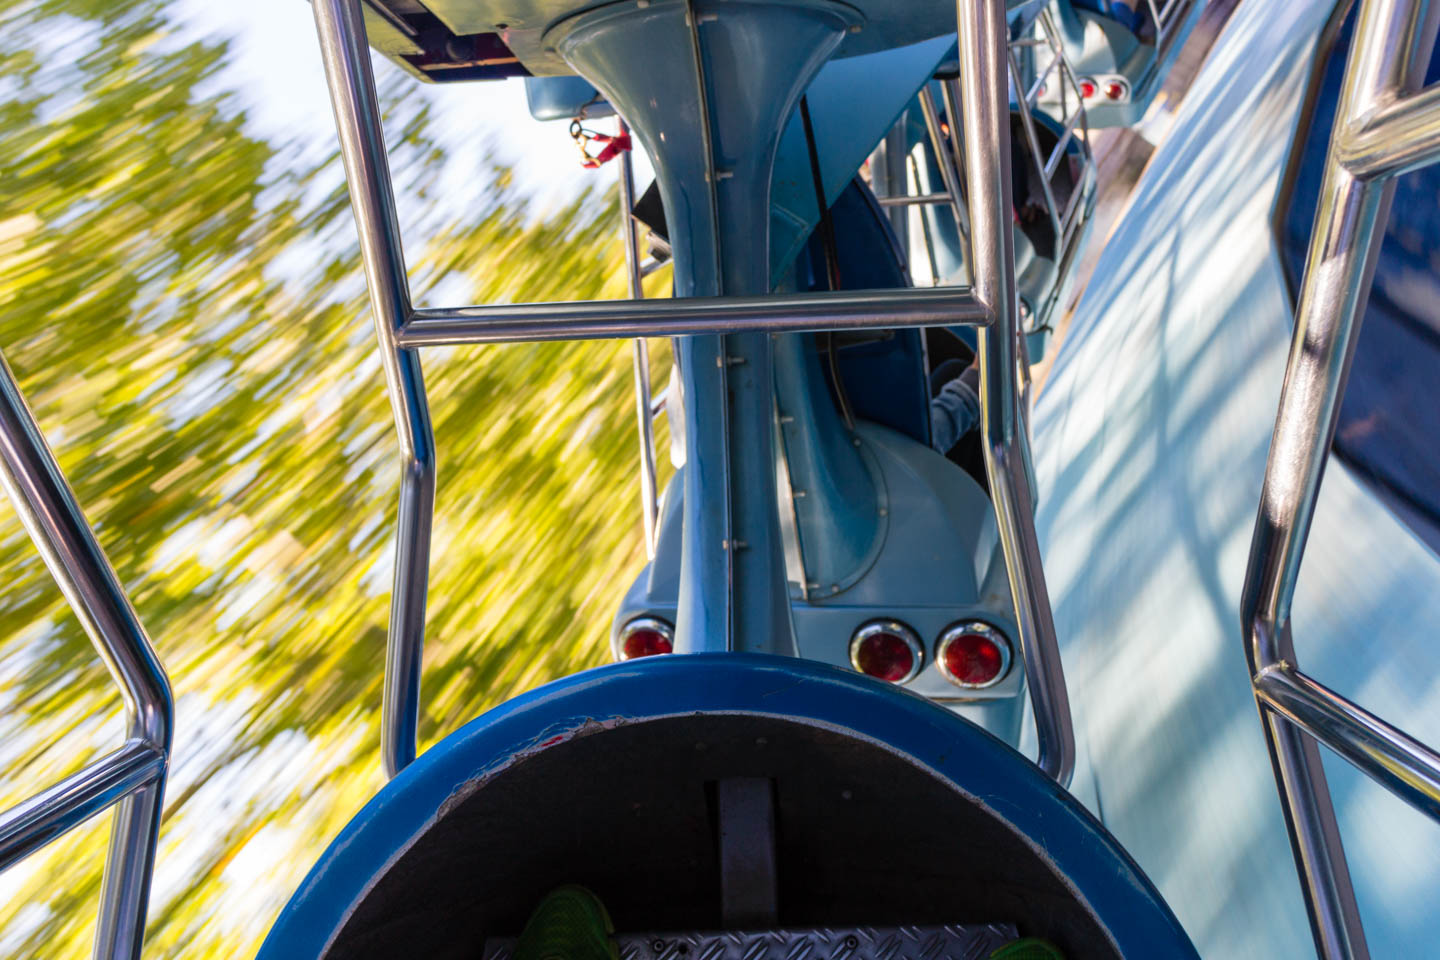 Spinning and motion sickness have you flipping on the Centennial Screamer